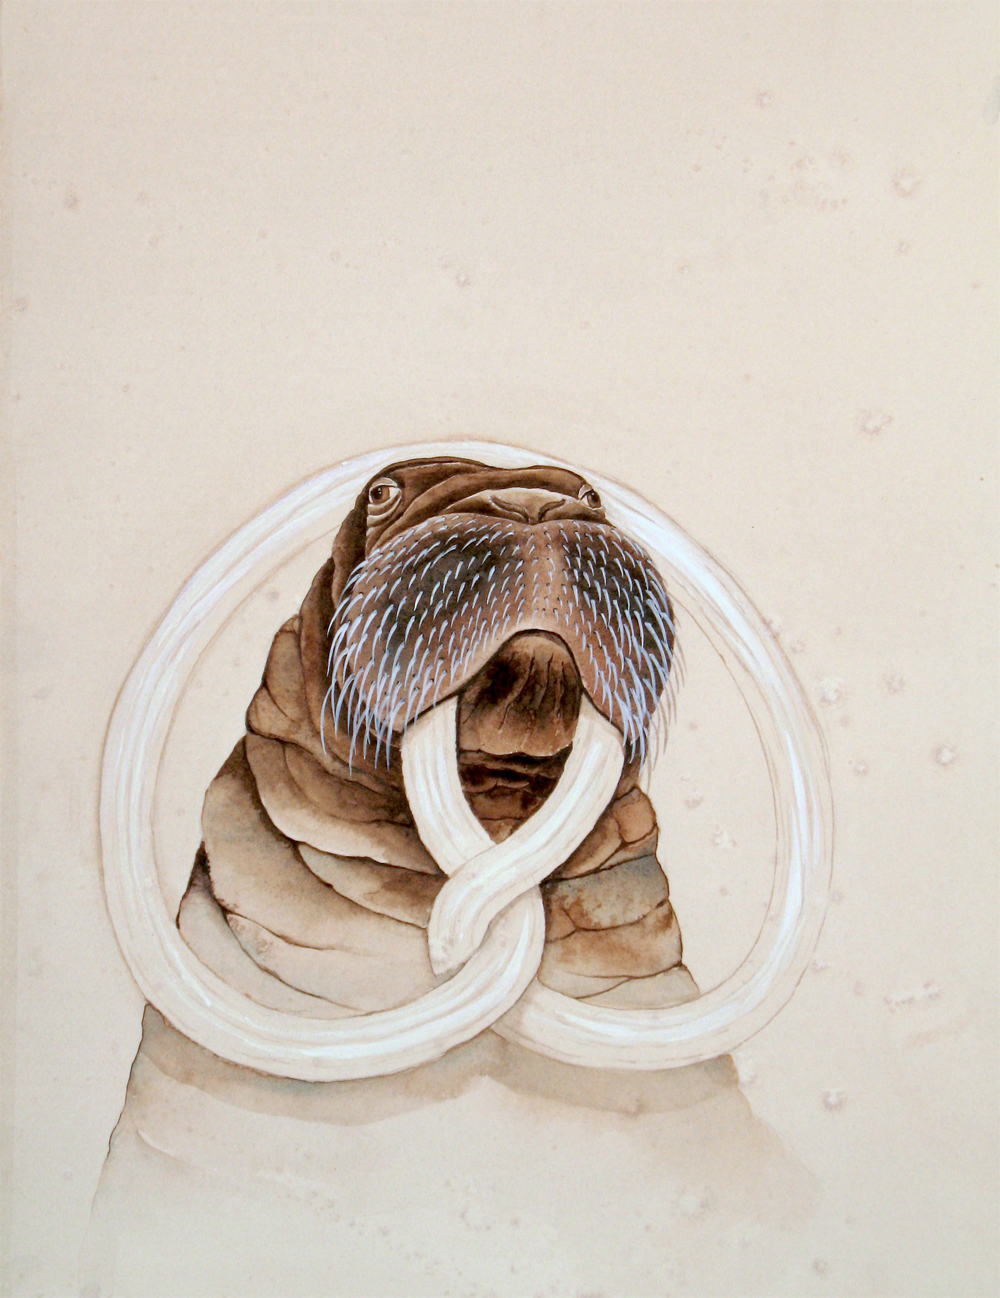 Justin Gibbens, Bavarian Walrus ii, 2017, watercolor, ink on paper, 13 x 10 inches, $850.